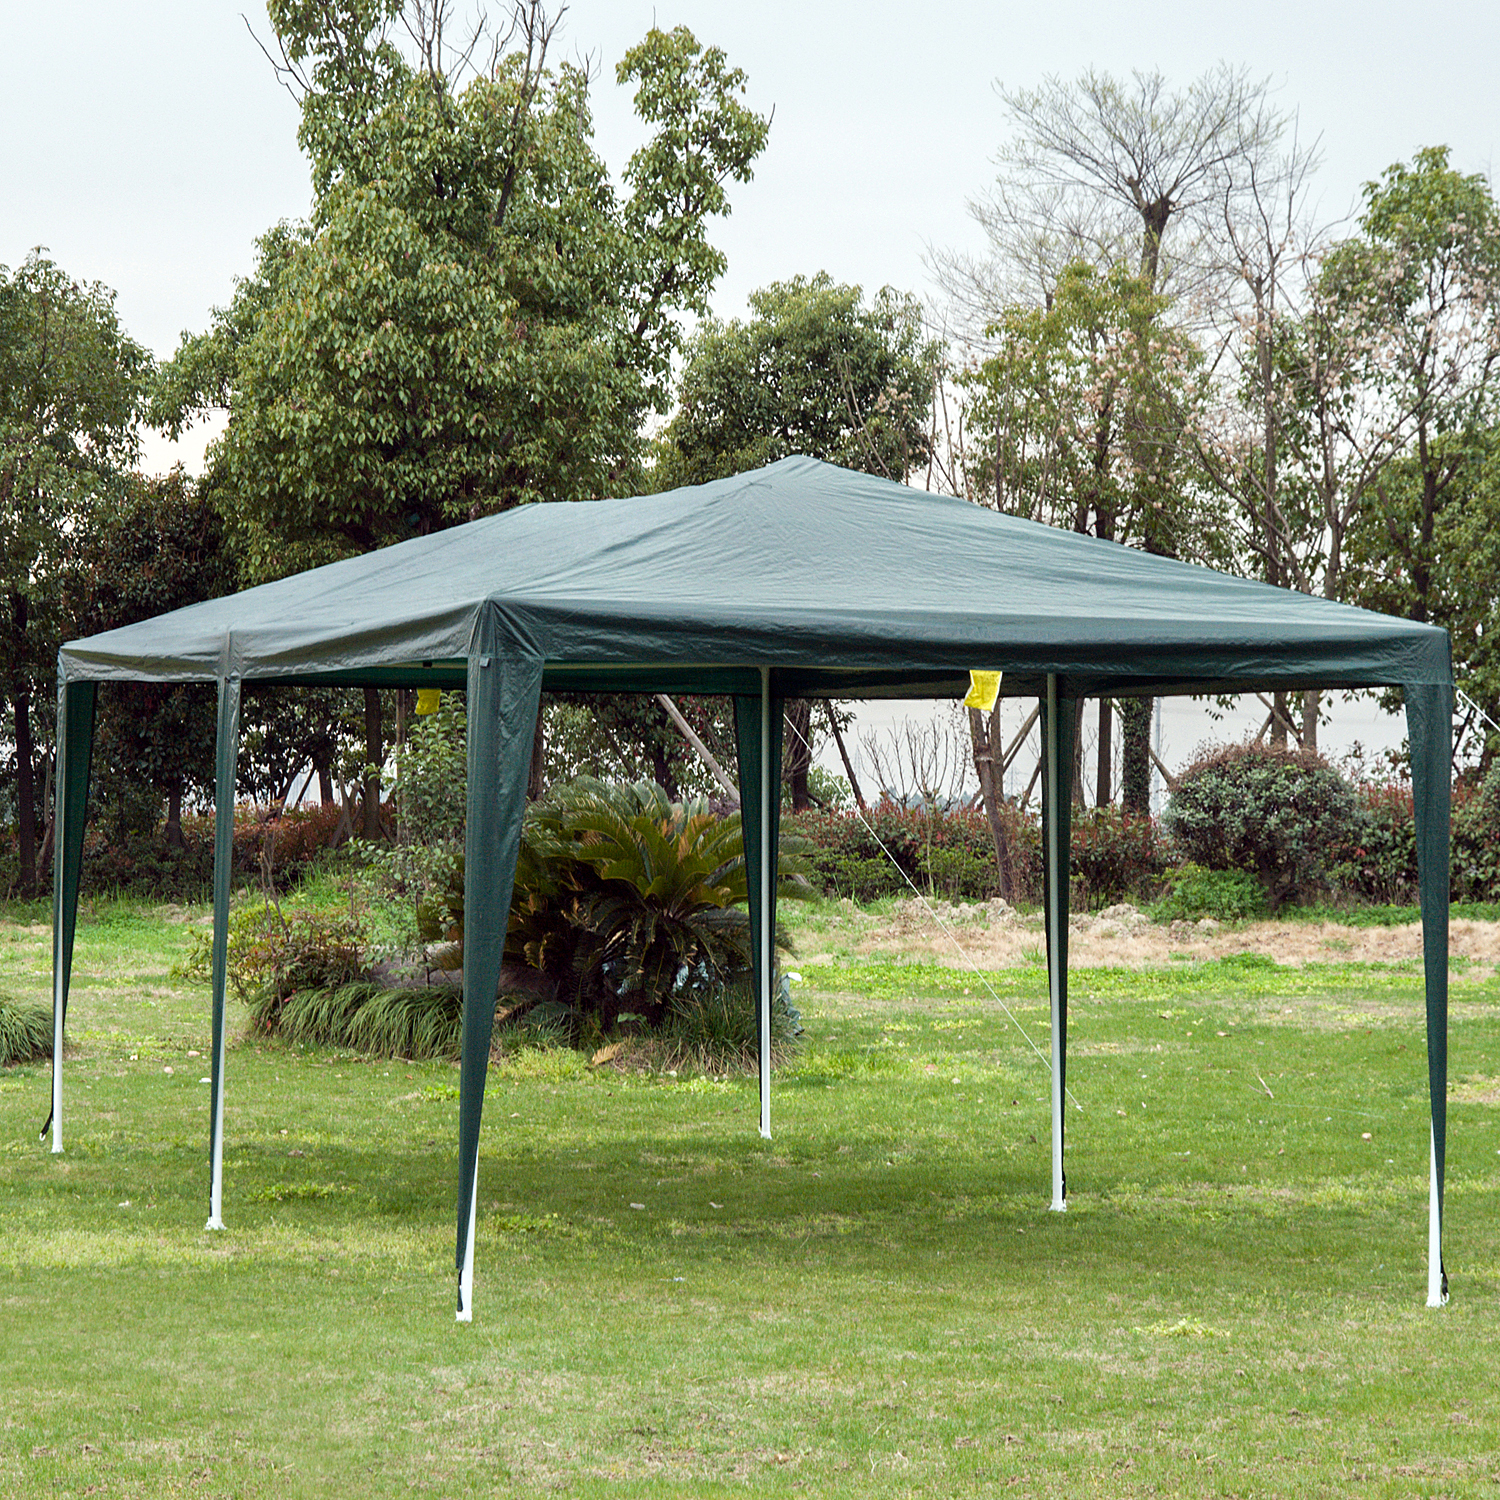 10-039-x-20-039-Gazebo-Canopy-Cover-Tent-Patio-Party-w-Removable-Mesh-Side-Walls thumbnail 6